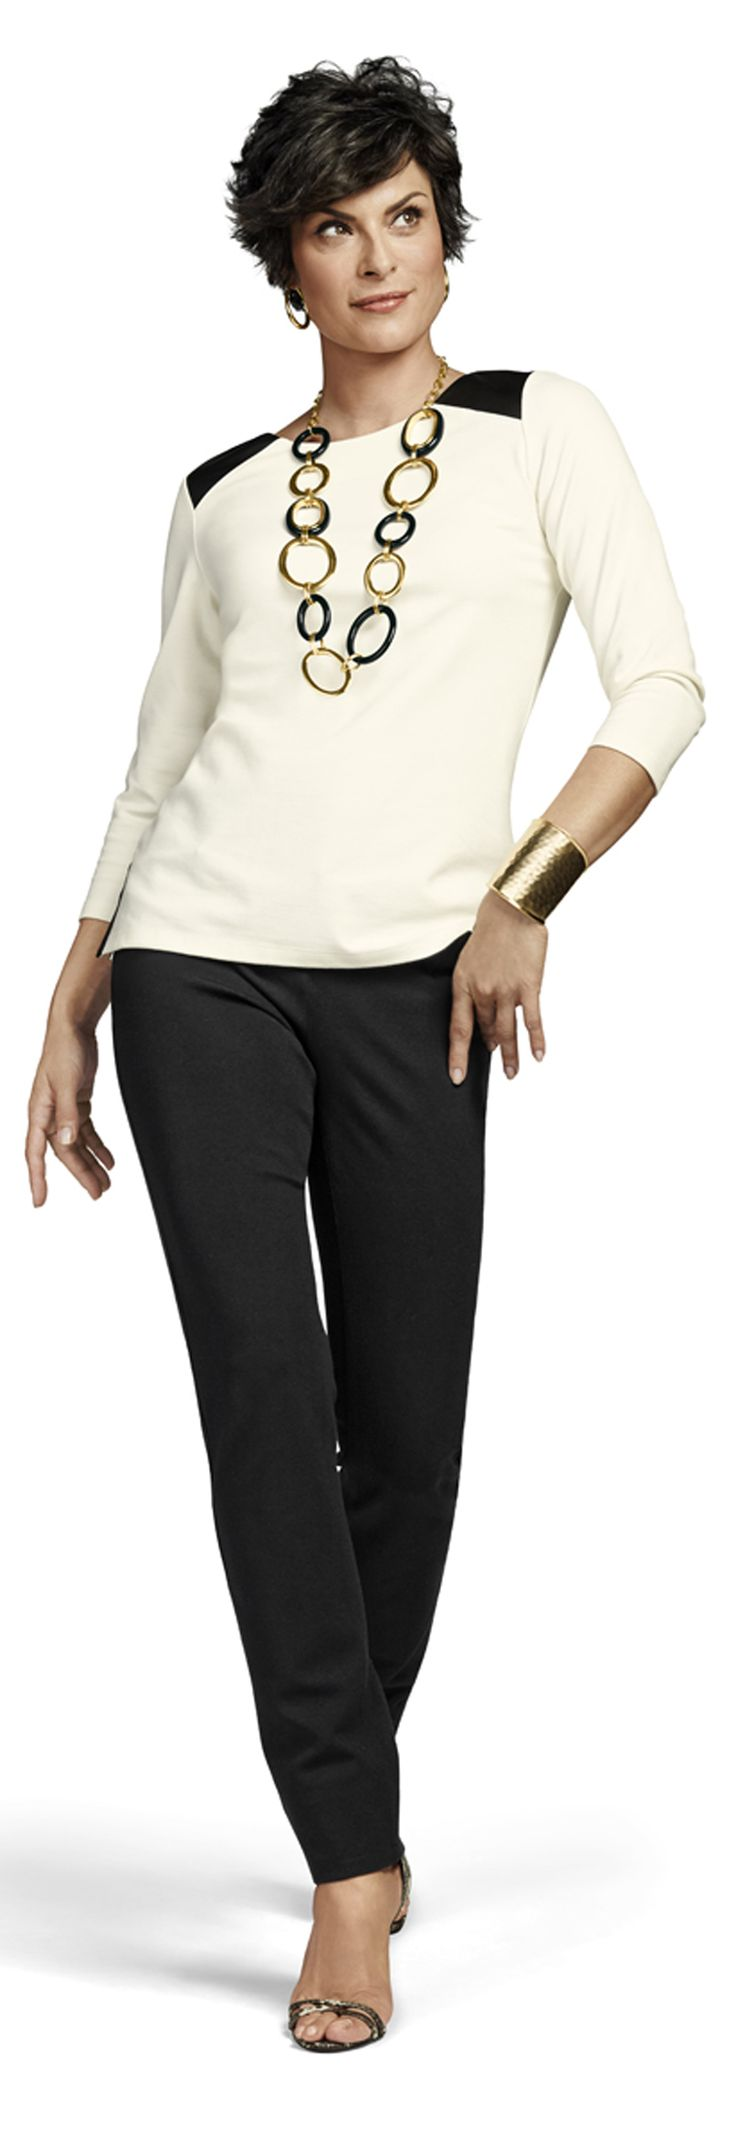 The So Slimming Peyton. Five-pocket ponte knit pant with Hidden-Fit technology and a slim leg.